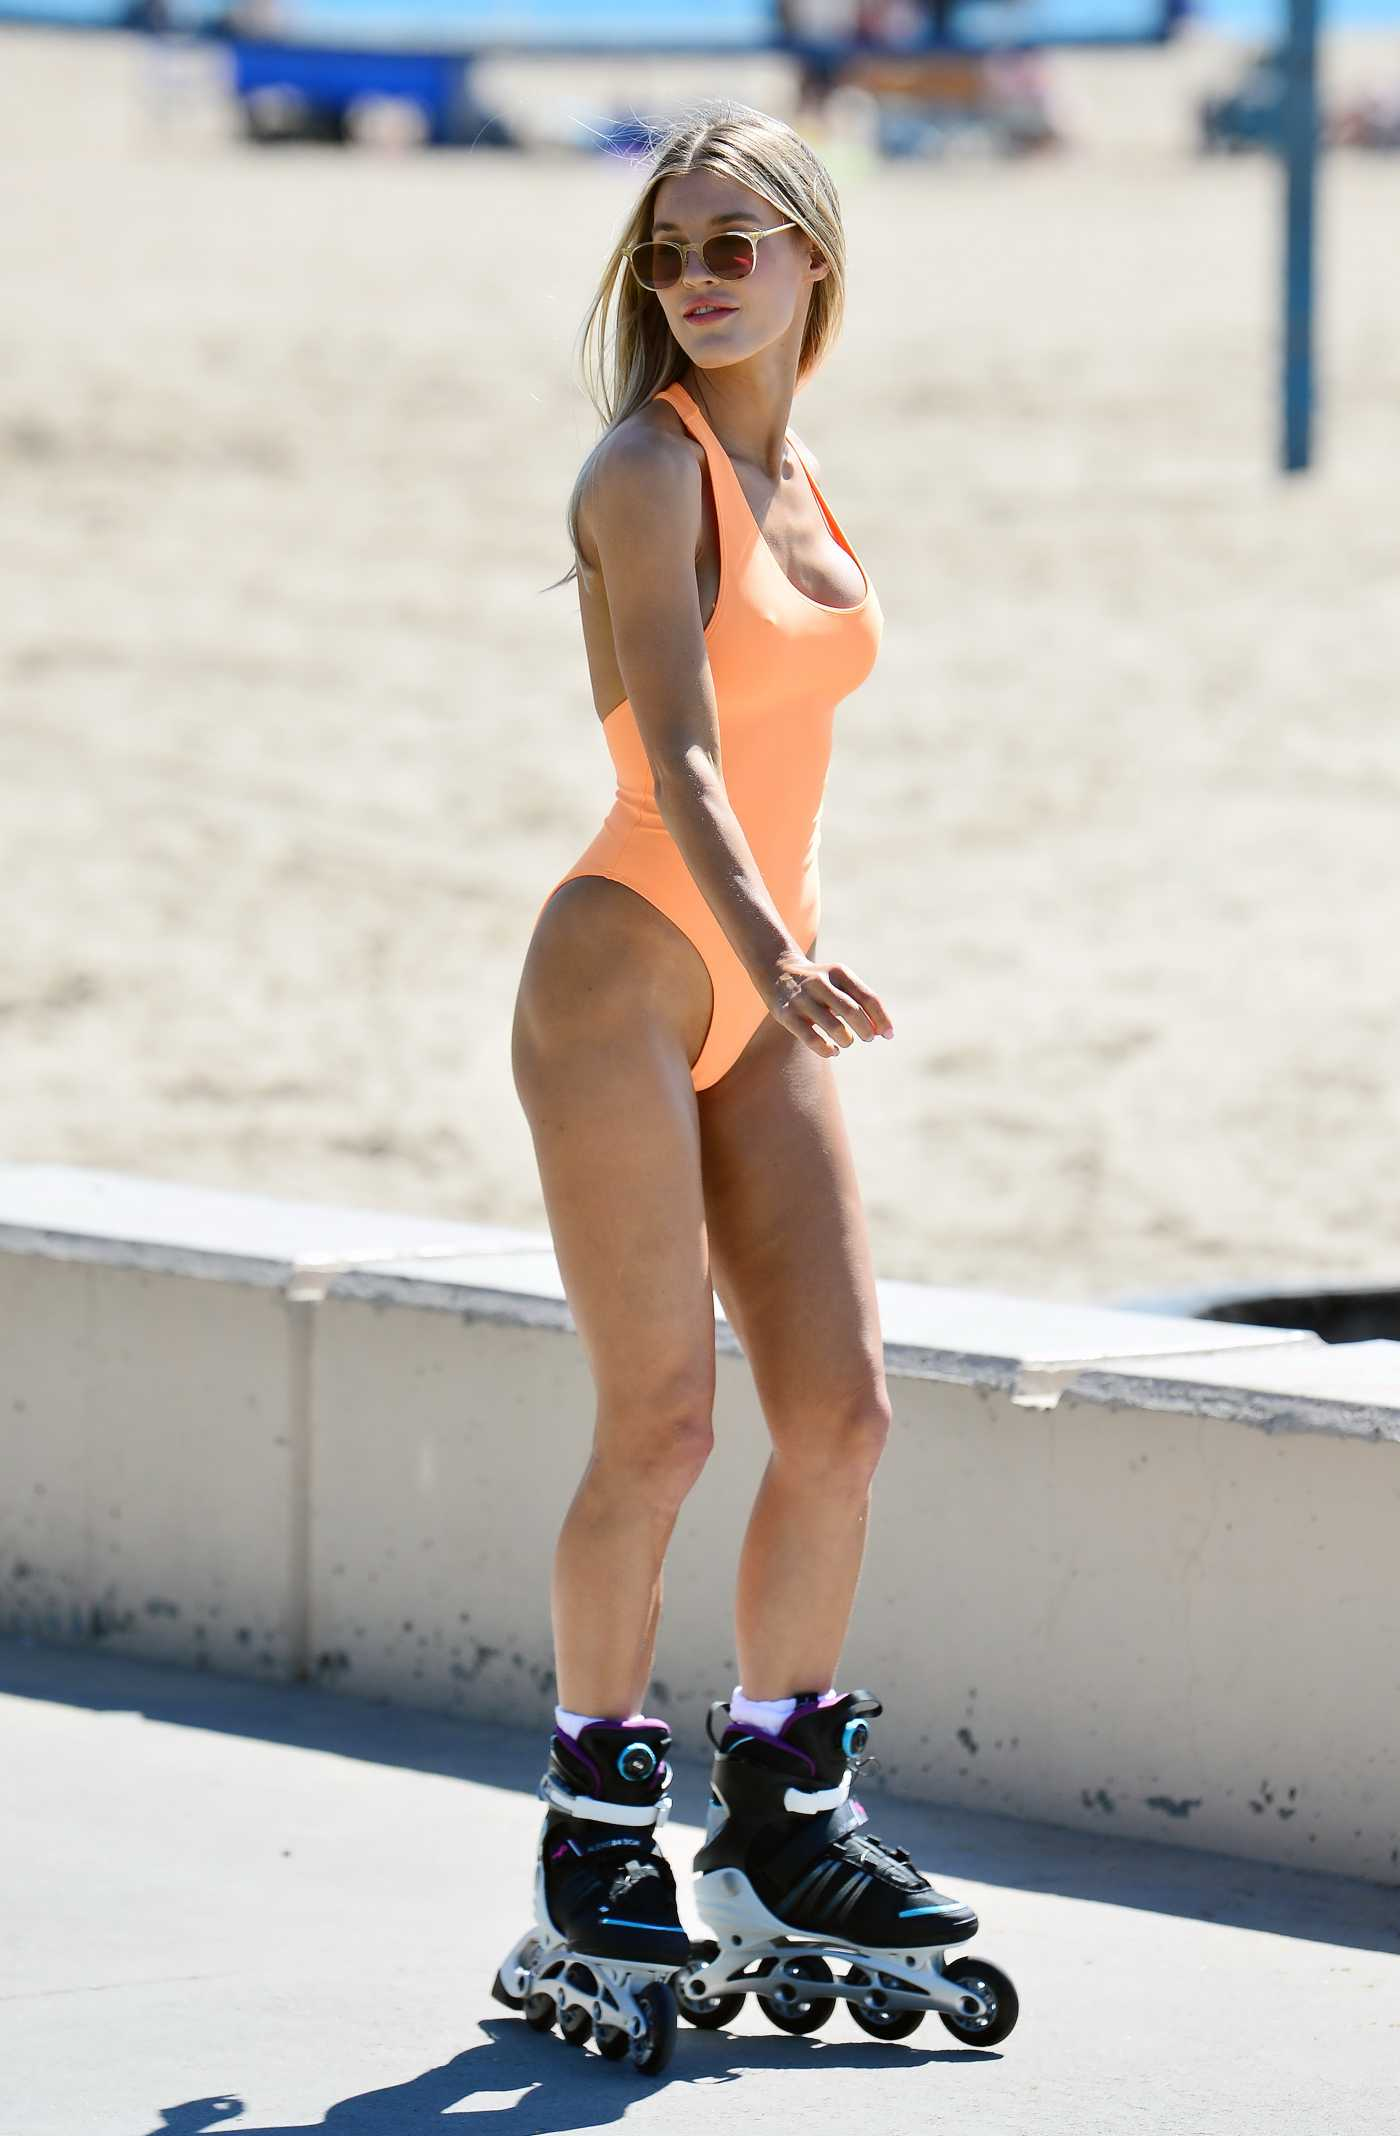 Joy Corrigan in an Orange Swimsuit Shows off Her Rollerblading Skills During a Photoshoot in Los Angeles 03/18/2021